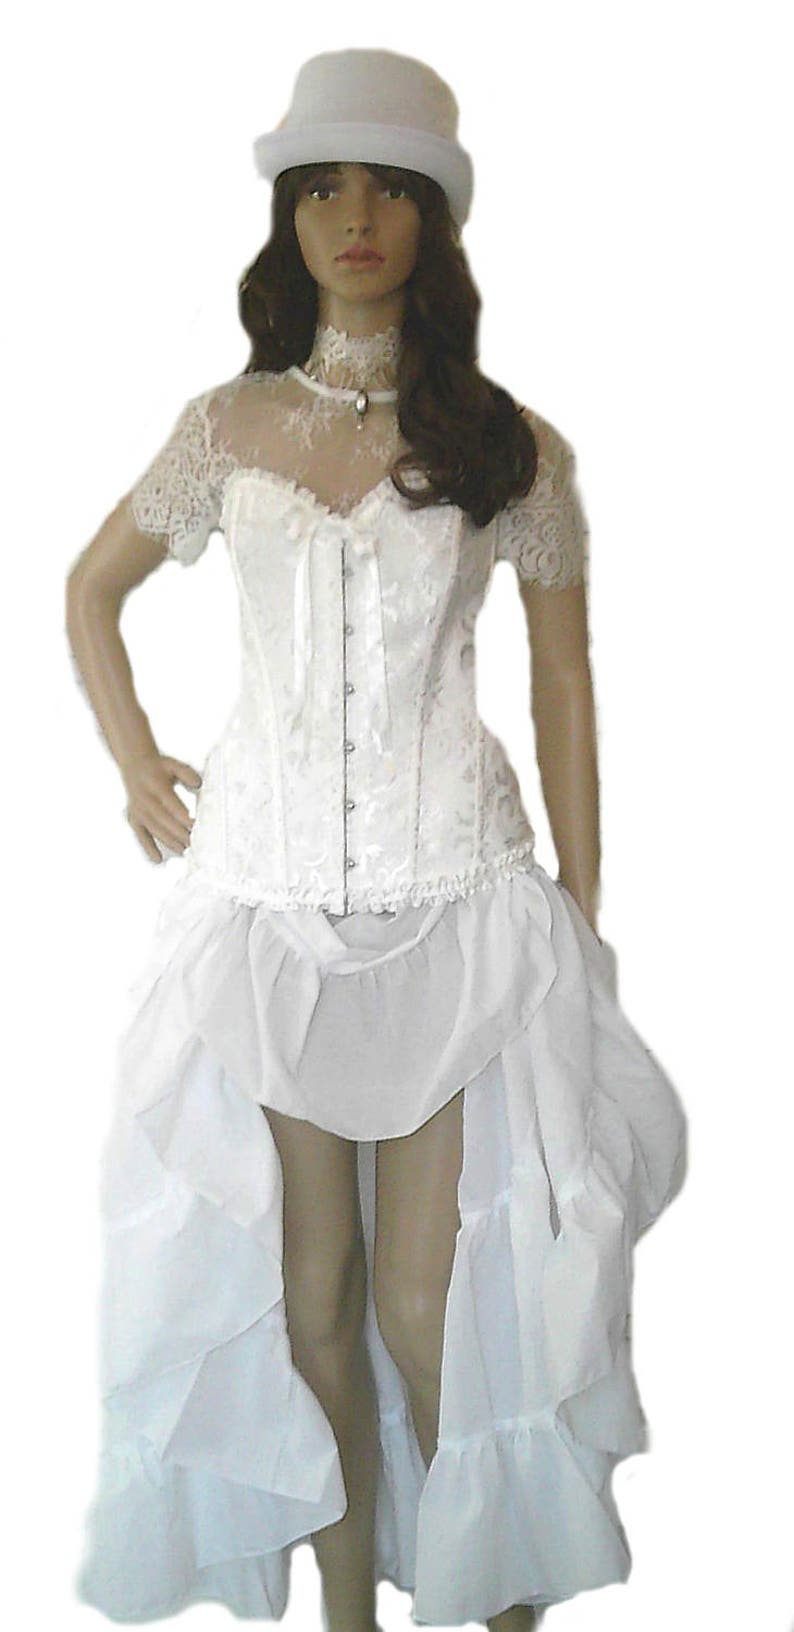 be2858c104e Steampunk Dress Costume Wedding Gown Renaissance Corset